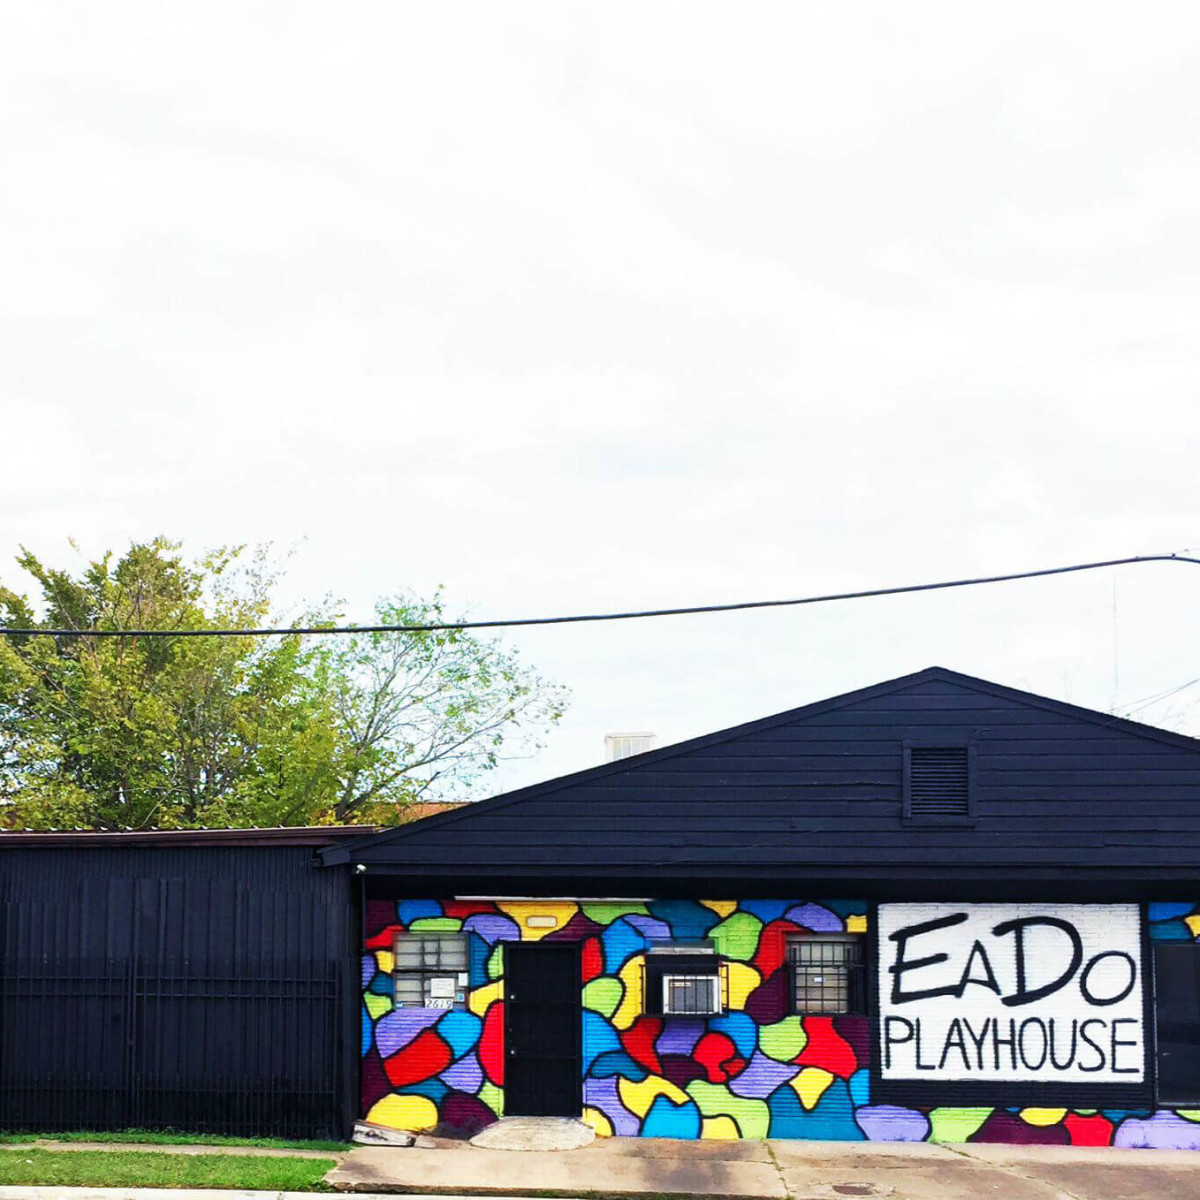 EaDo Playhouse presents A New Brain